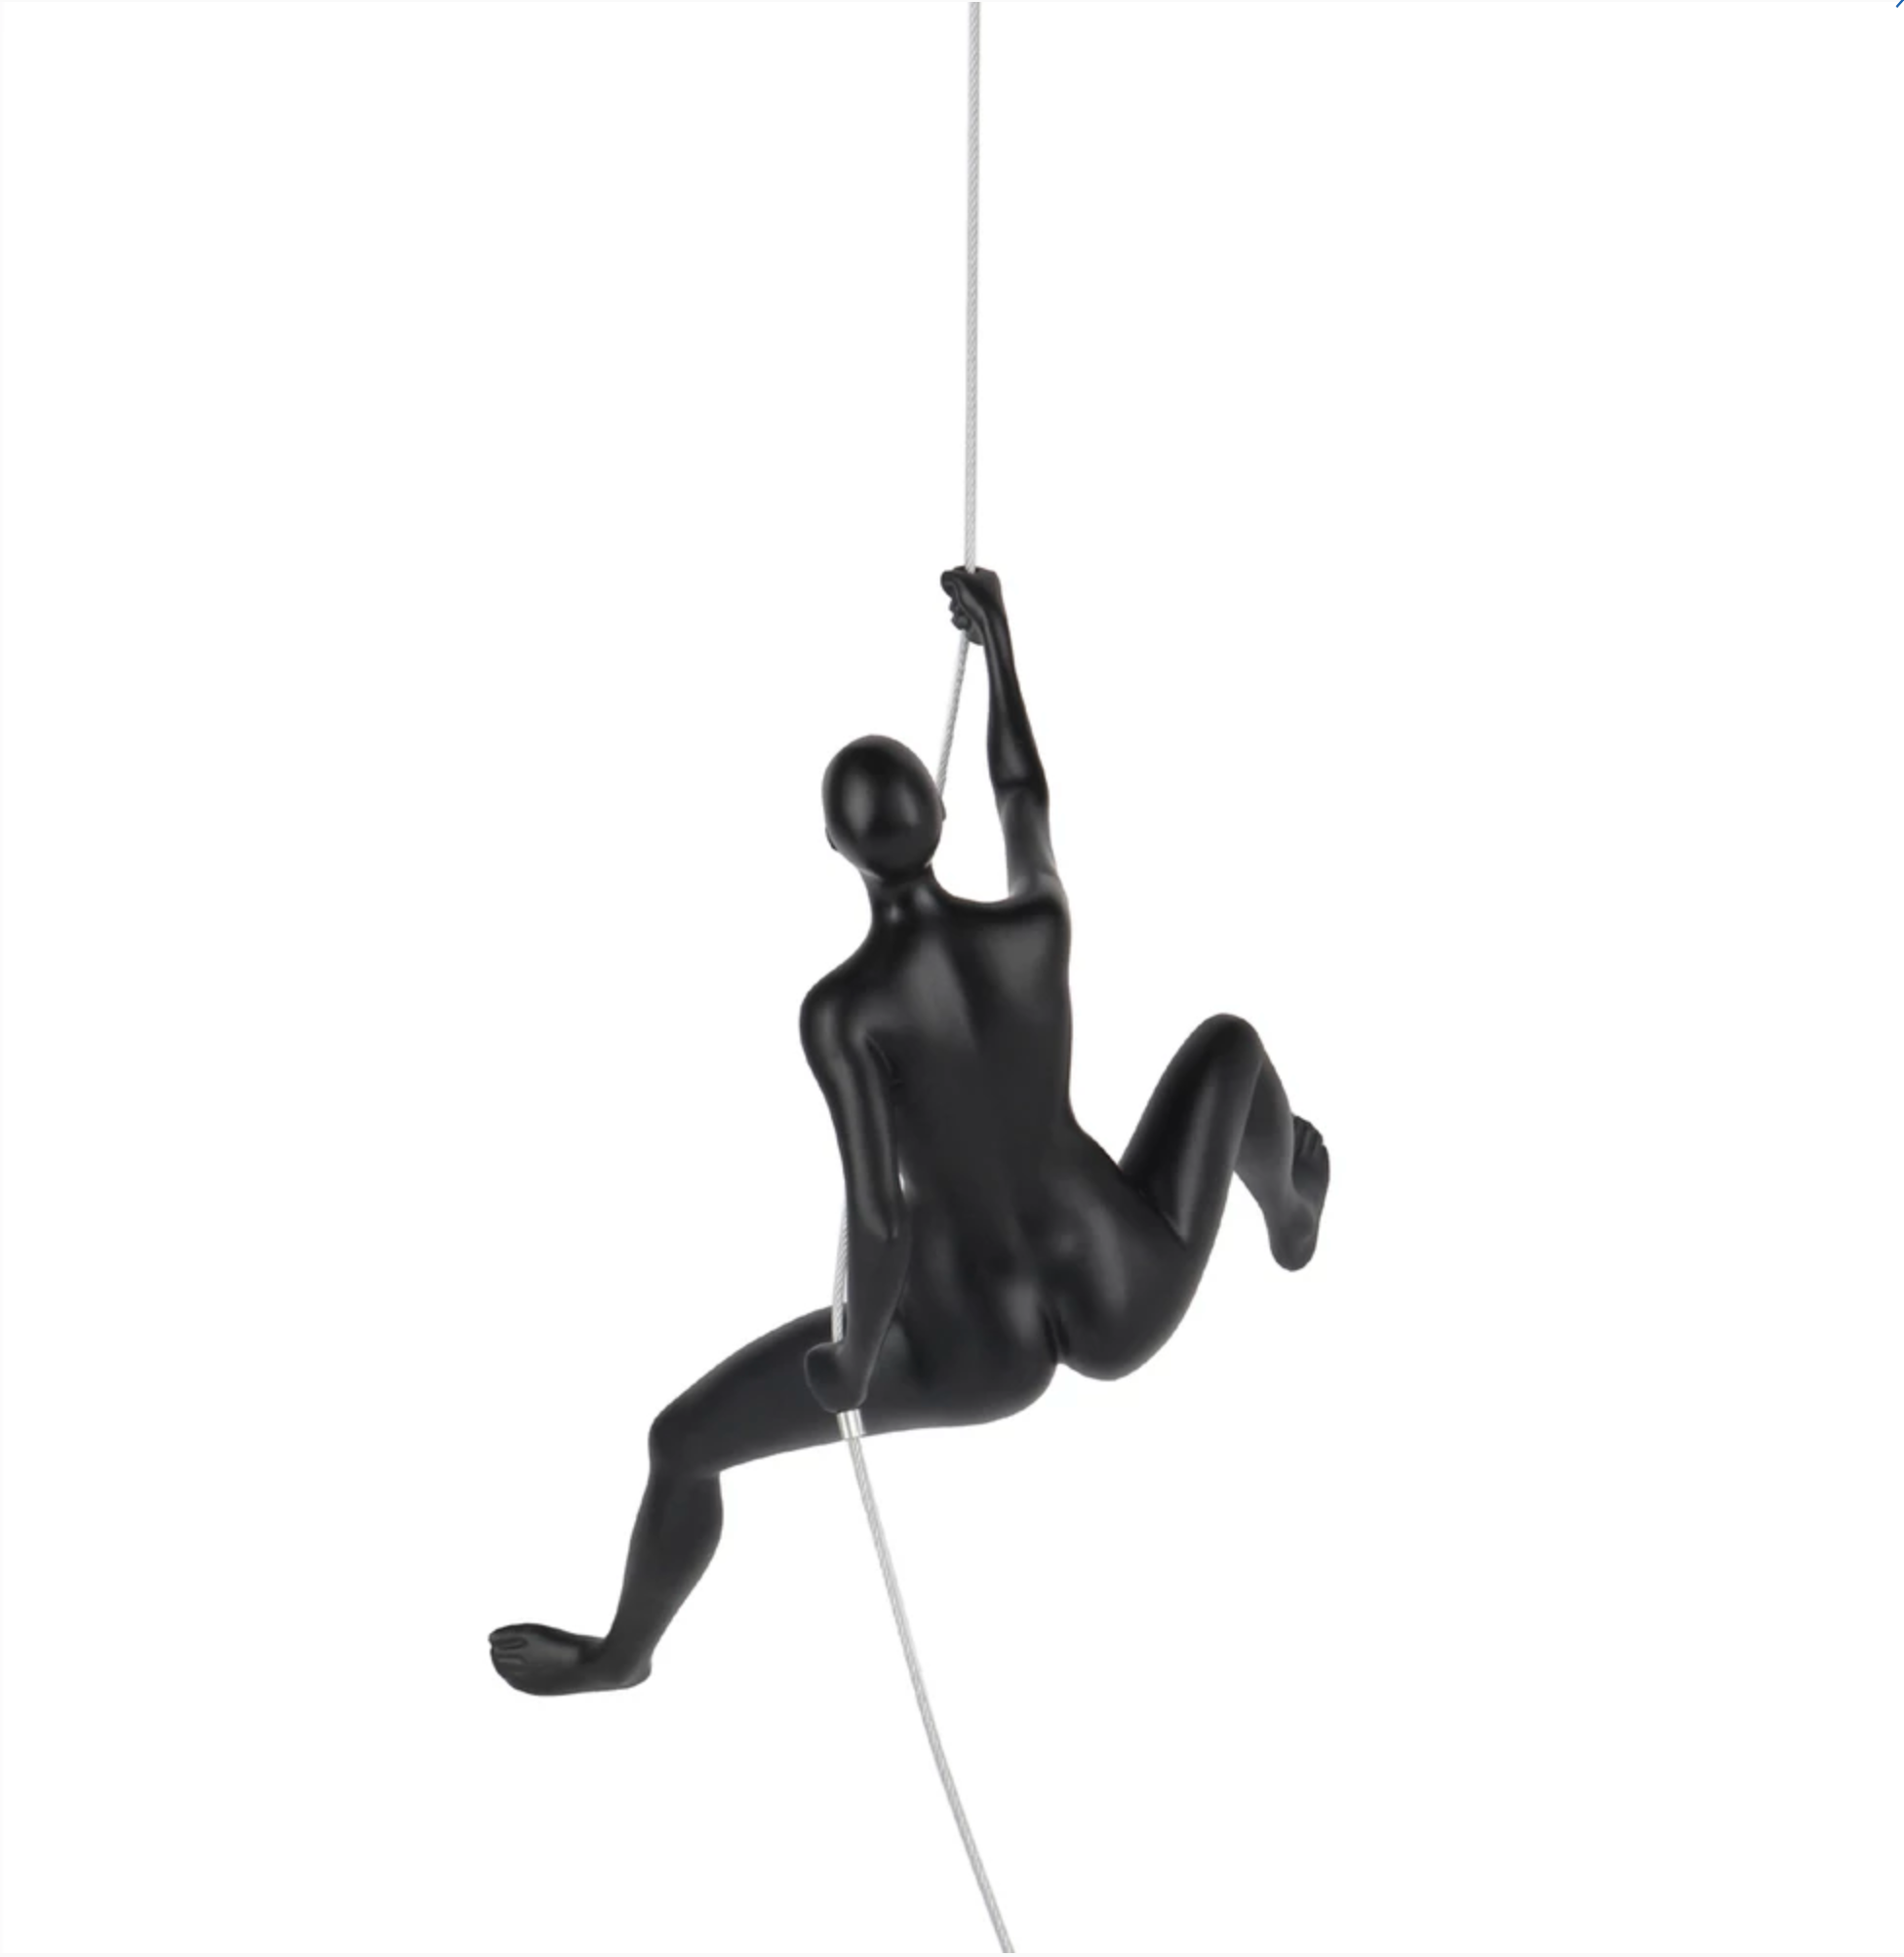 Eiter Climbing Woman Sculpture